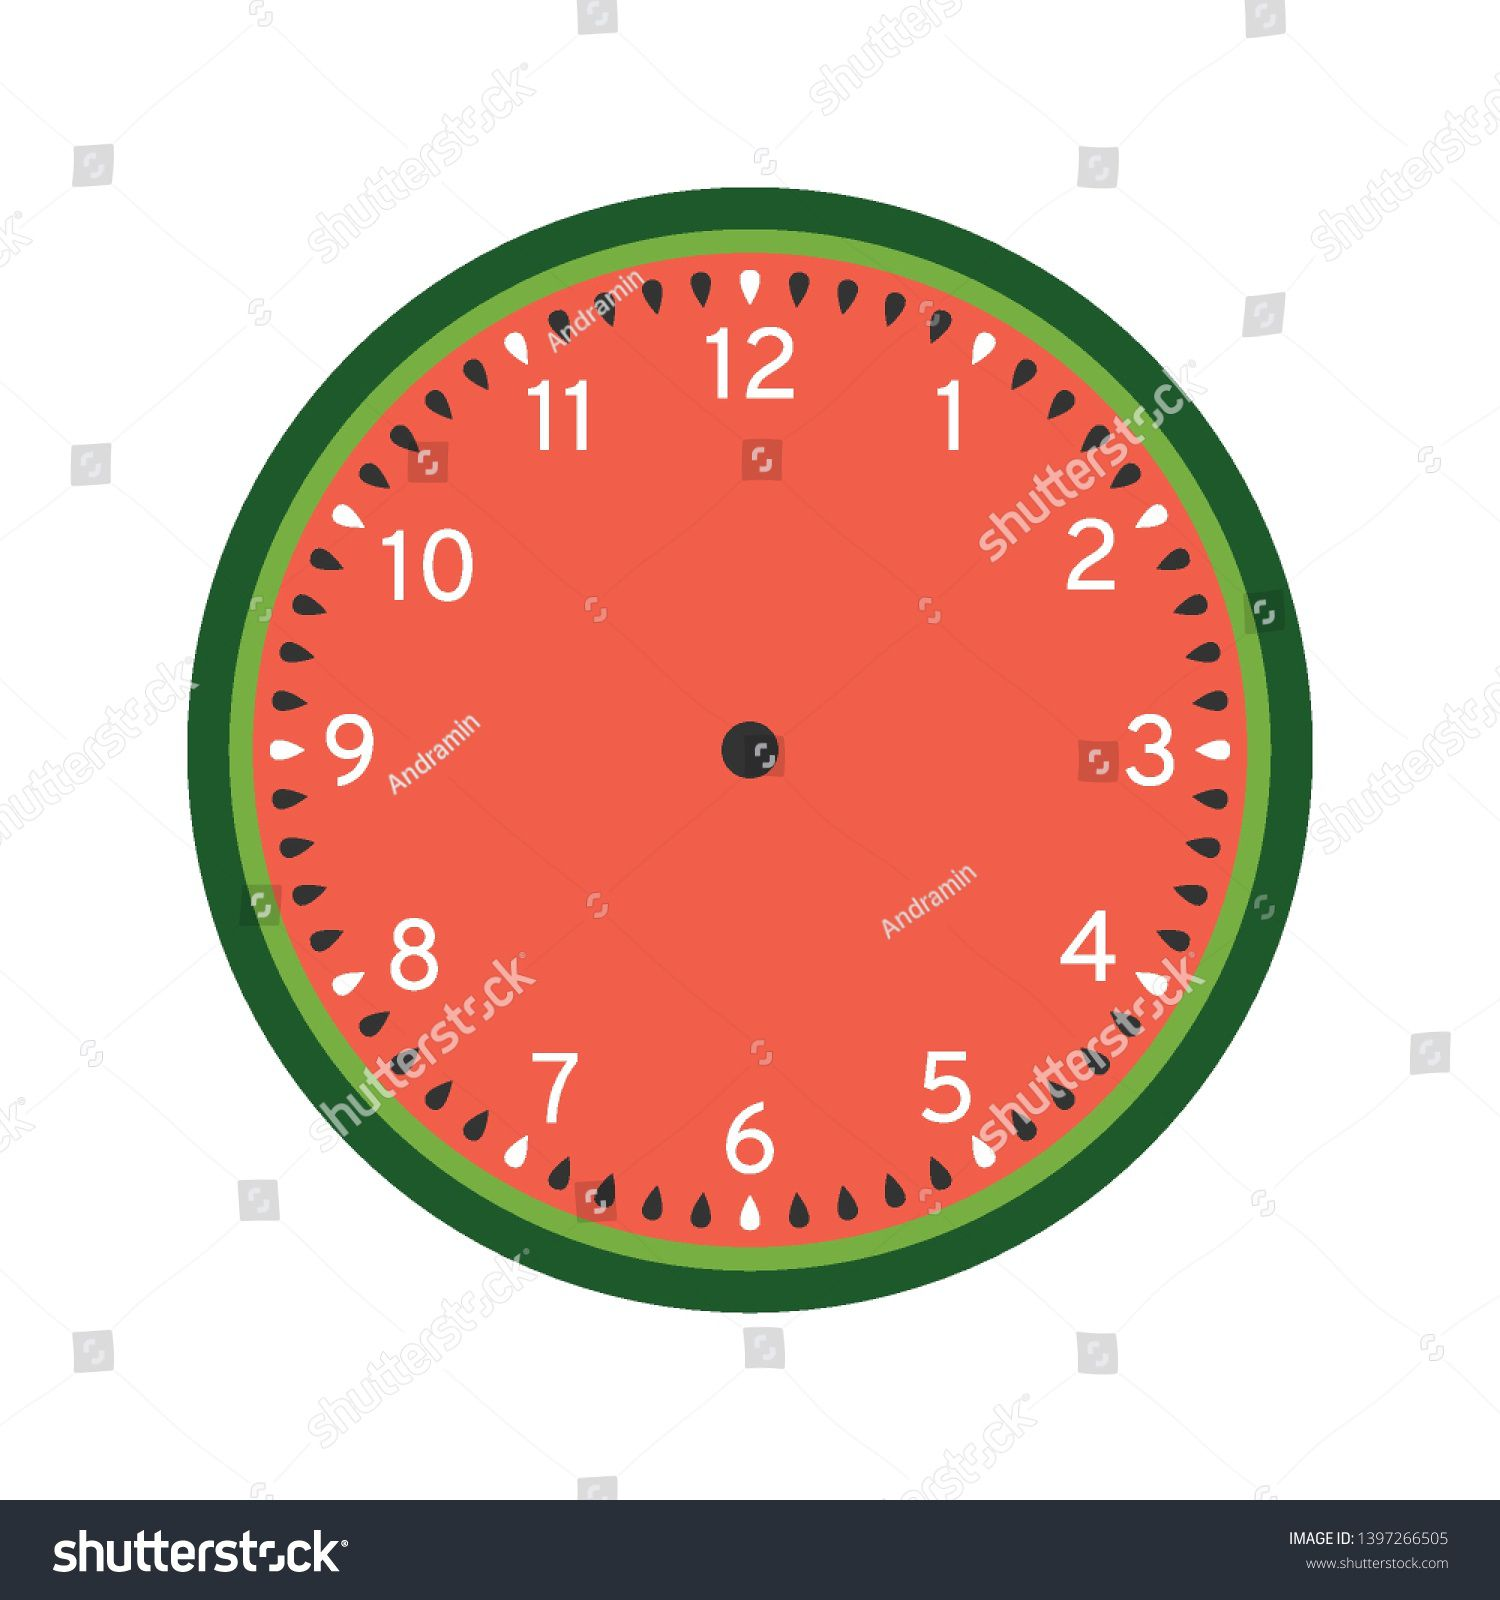 008 Surprising Customizable Clock Face Template Idea Full